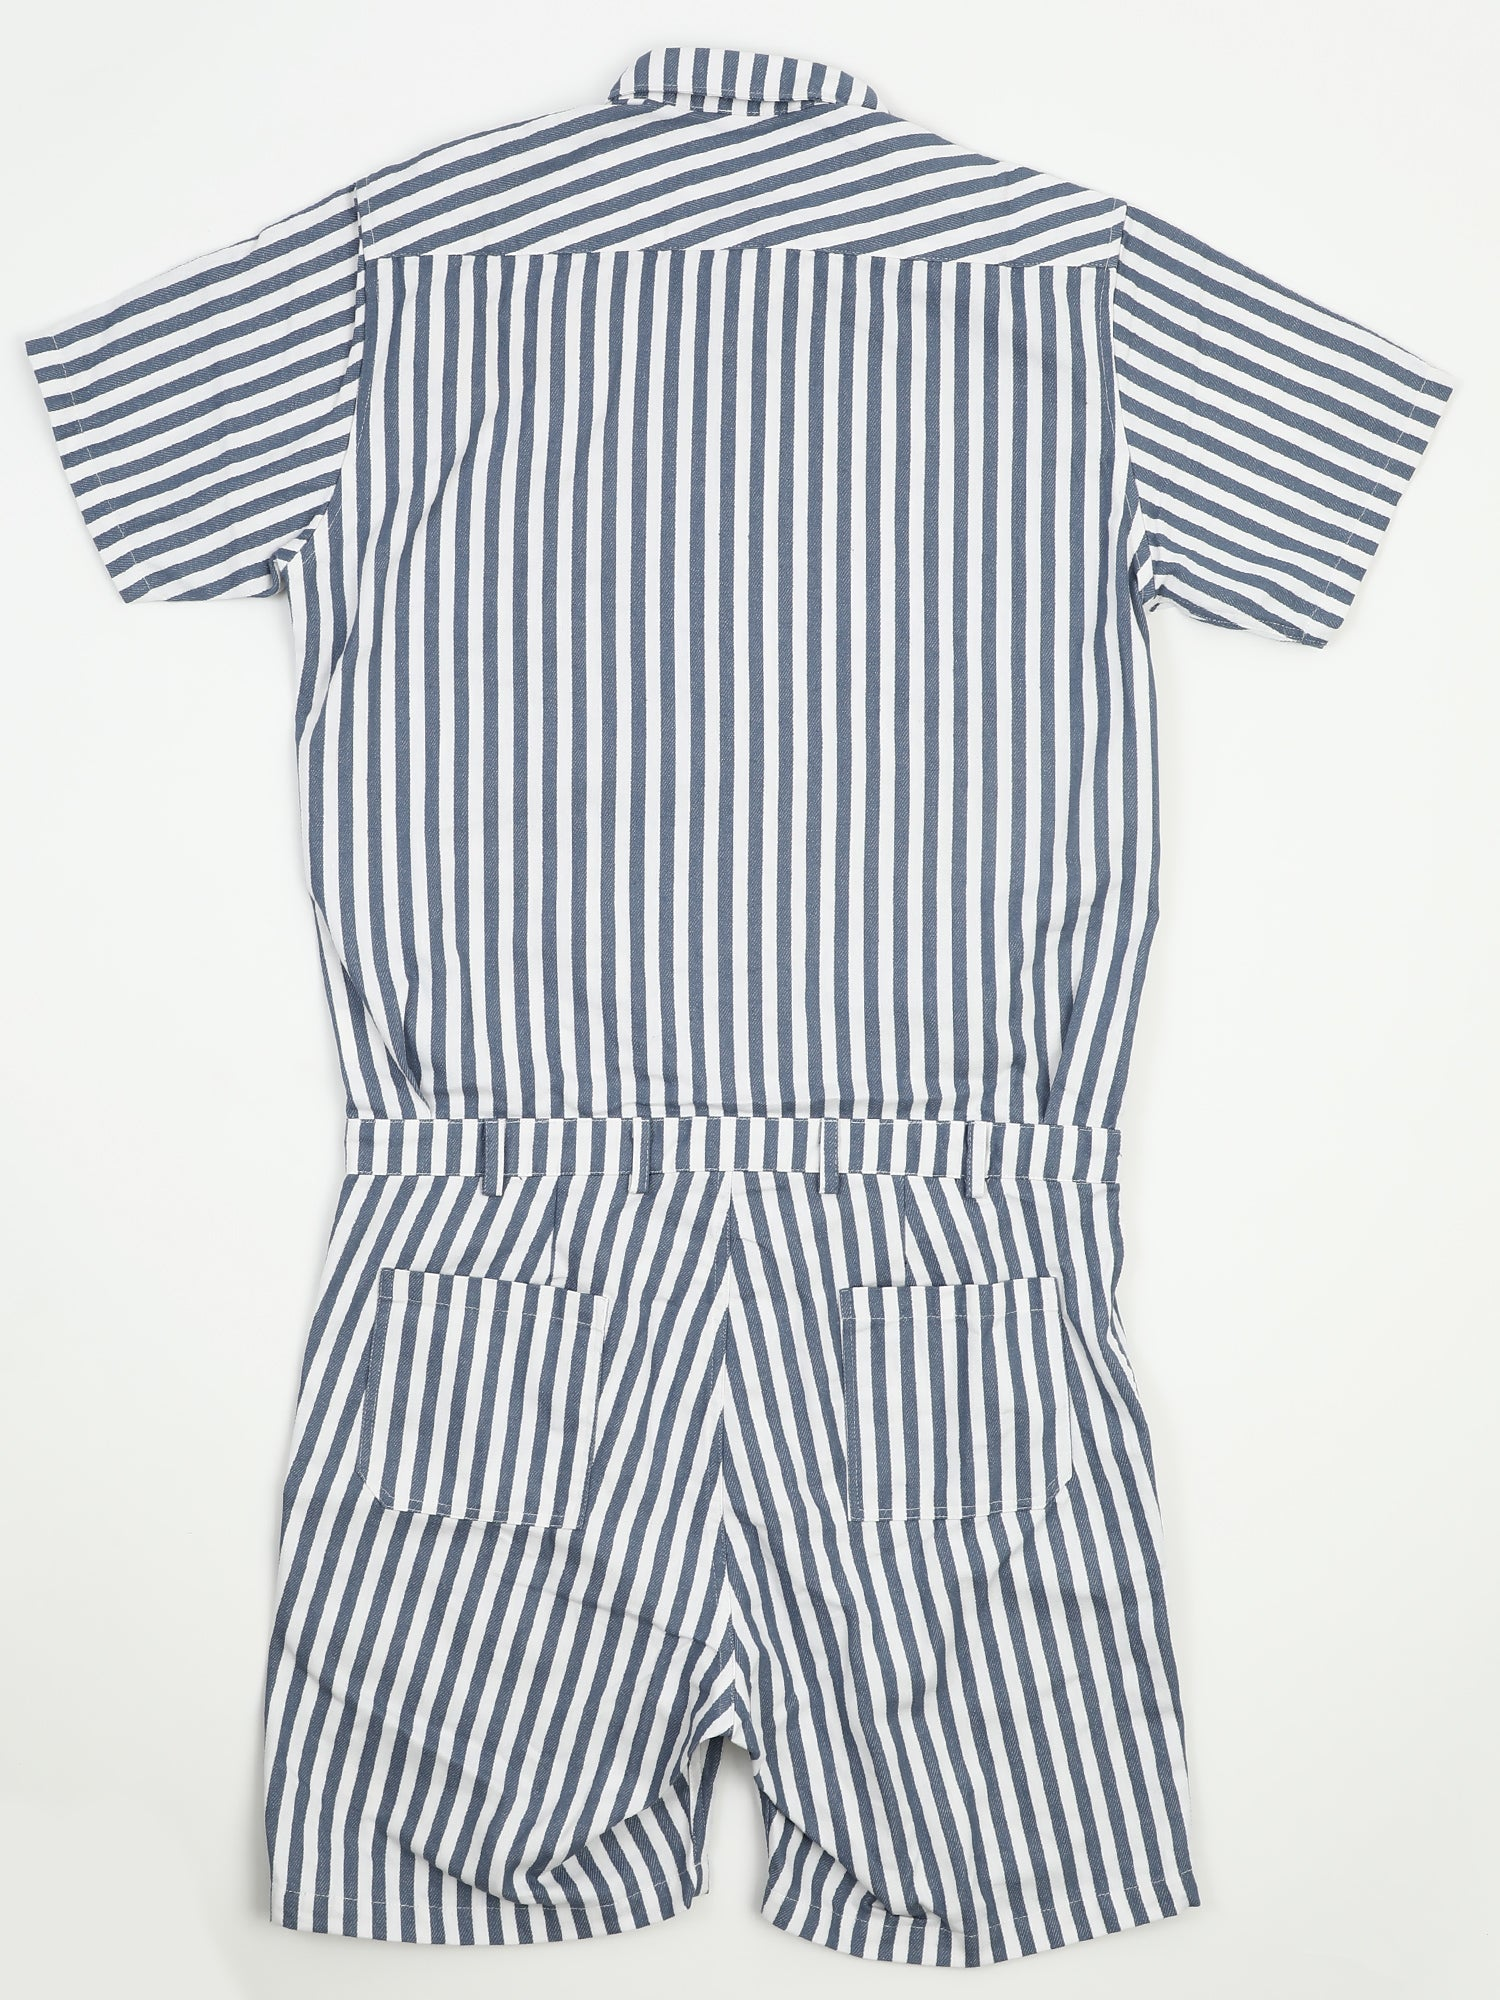 HALF-SLEEVE ALL-IN-ONE SHIRT [STRIPE]